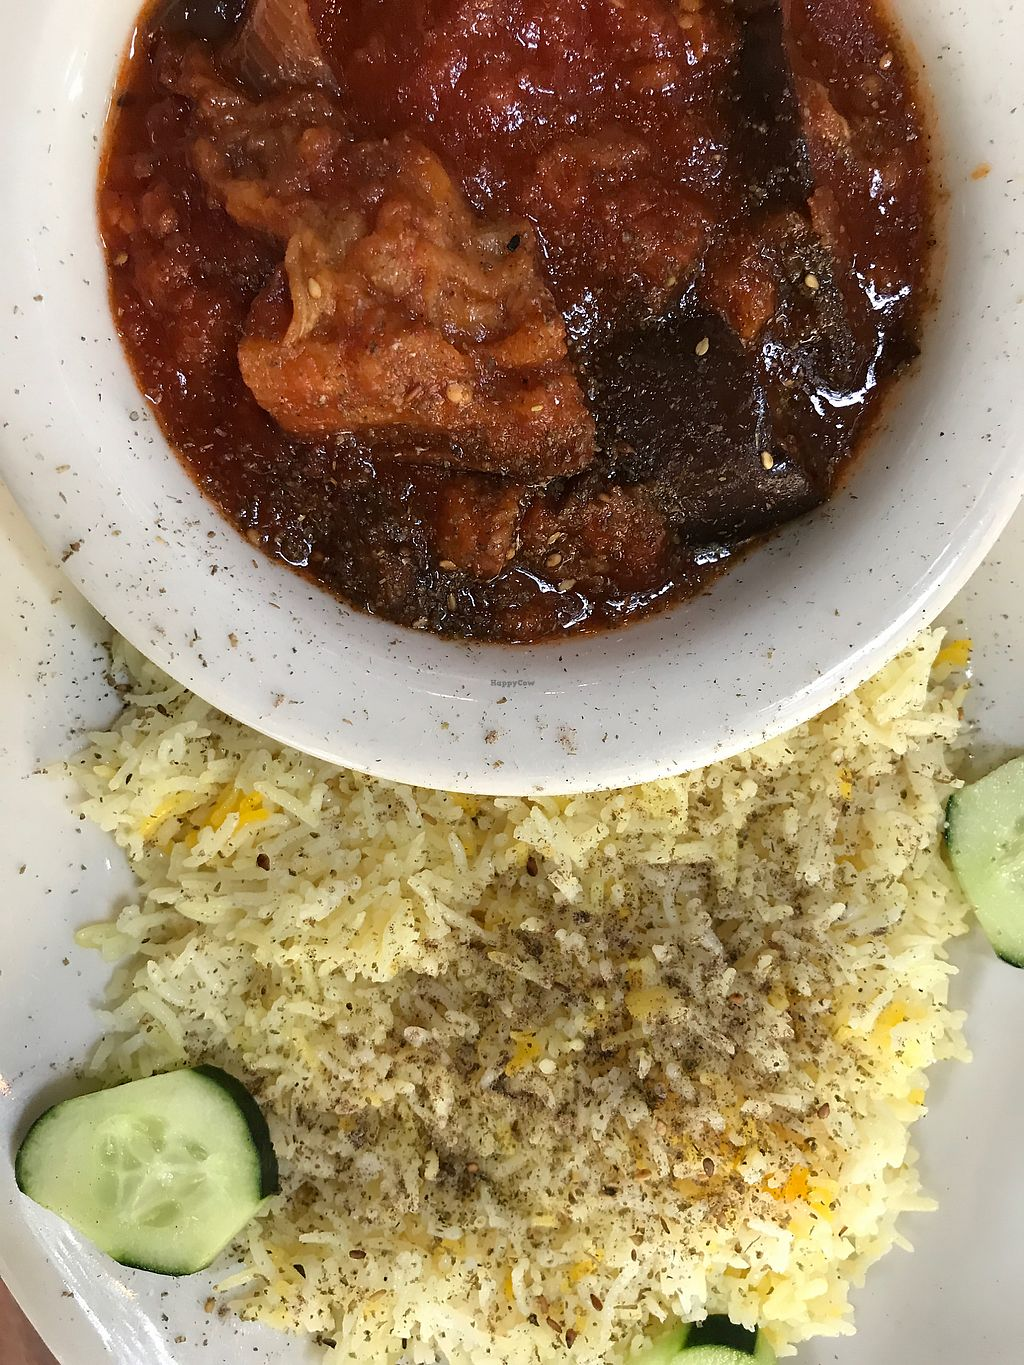 """Photo of Dar Salam - Downtown  by <a href=""""/members/profile/Arthousebill"""">Arthousebill</a> <br/>Eggplant stew and aromatic rice  <br/> October 14, 2017  - <a href='/contact/abuse/image/75408/315156'>Report</a>"""